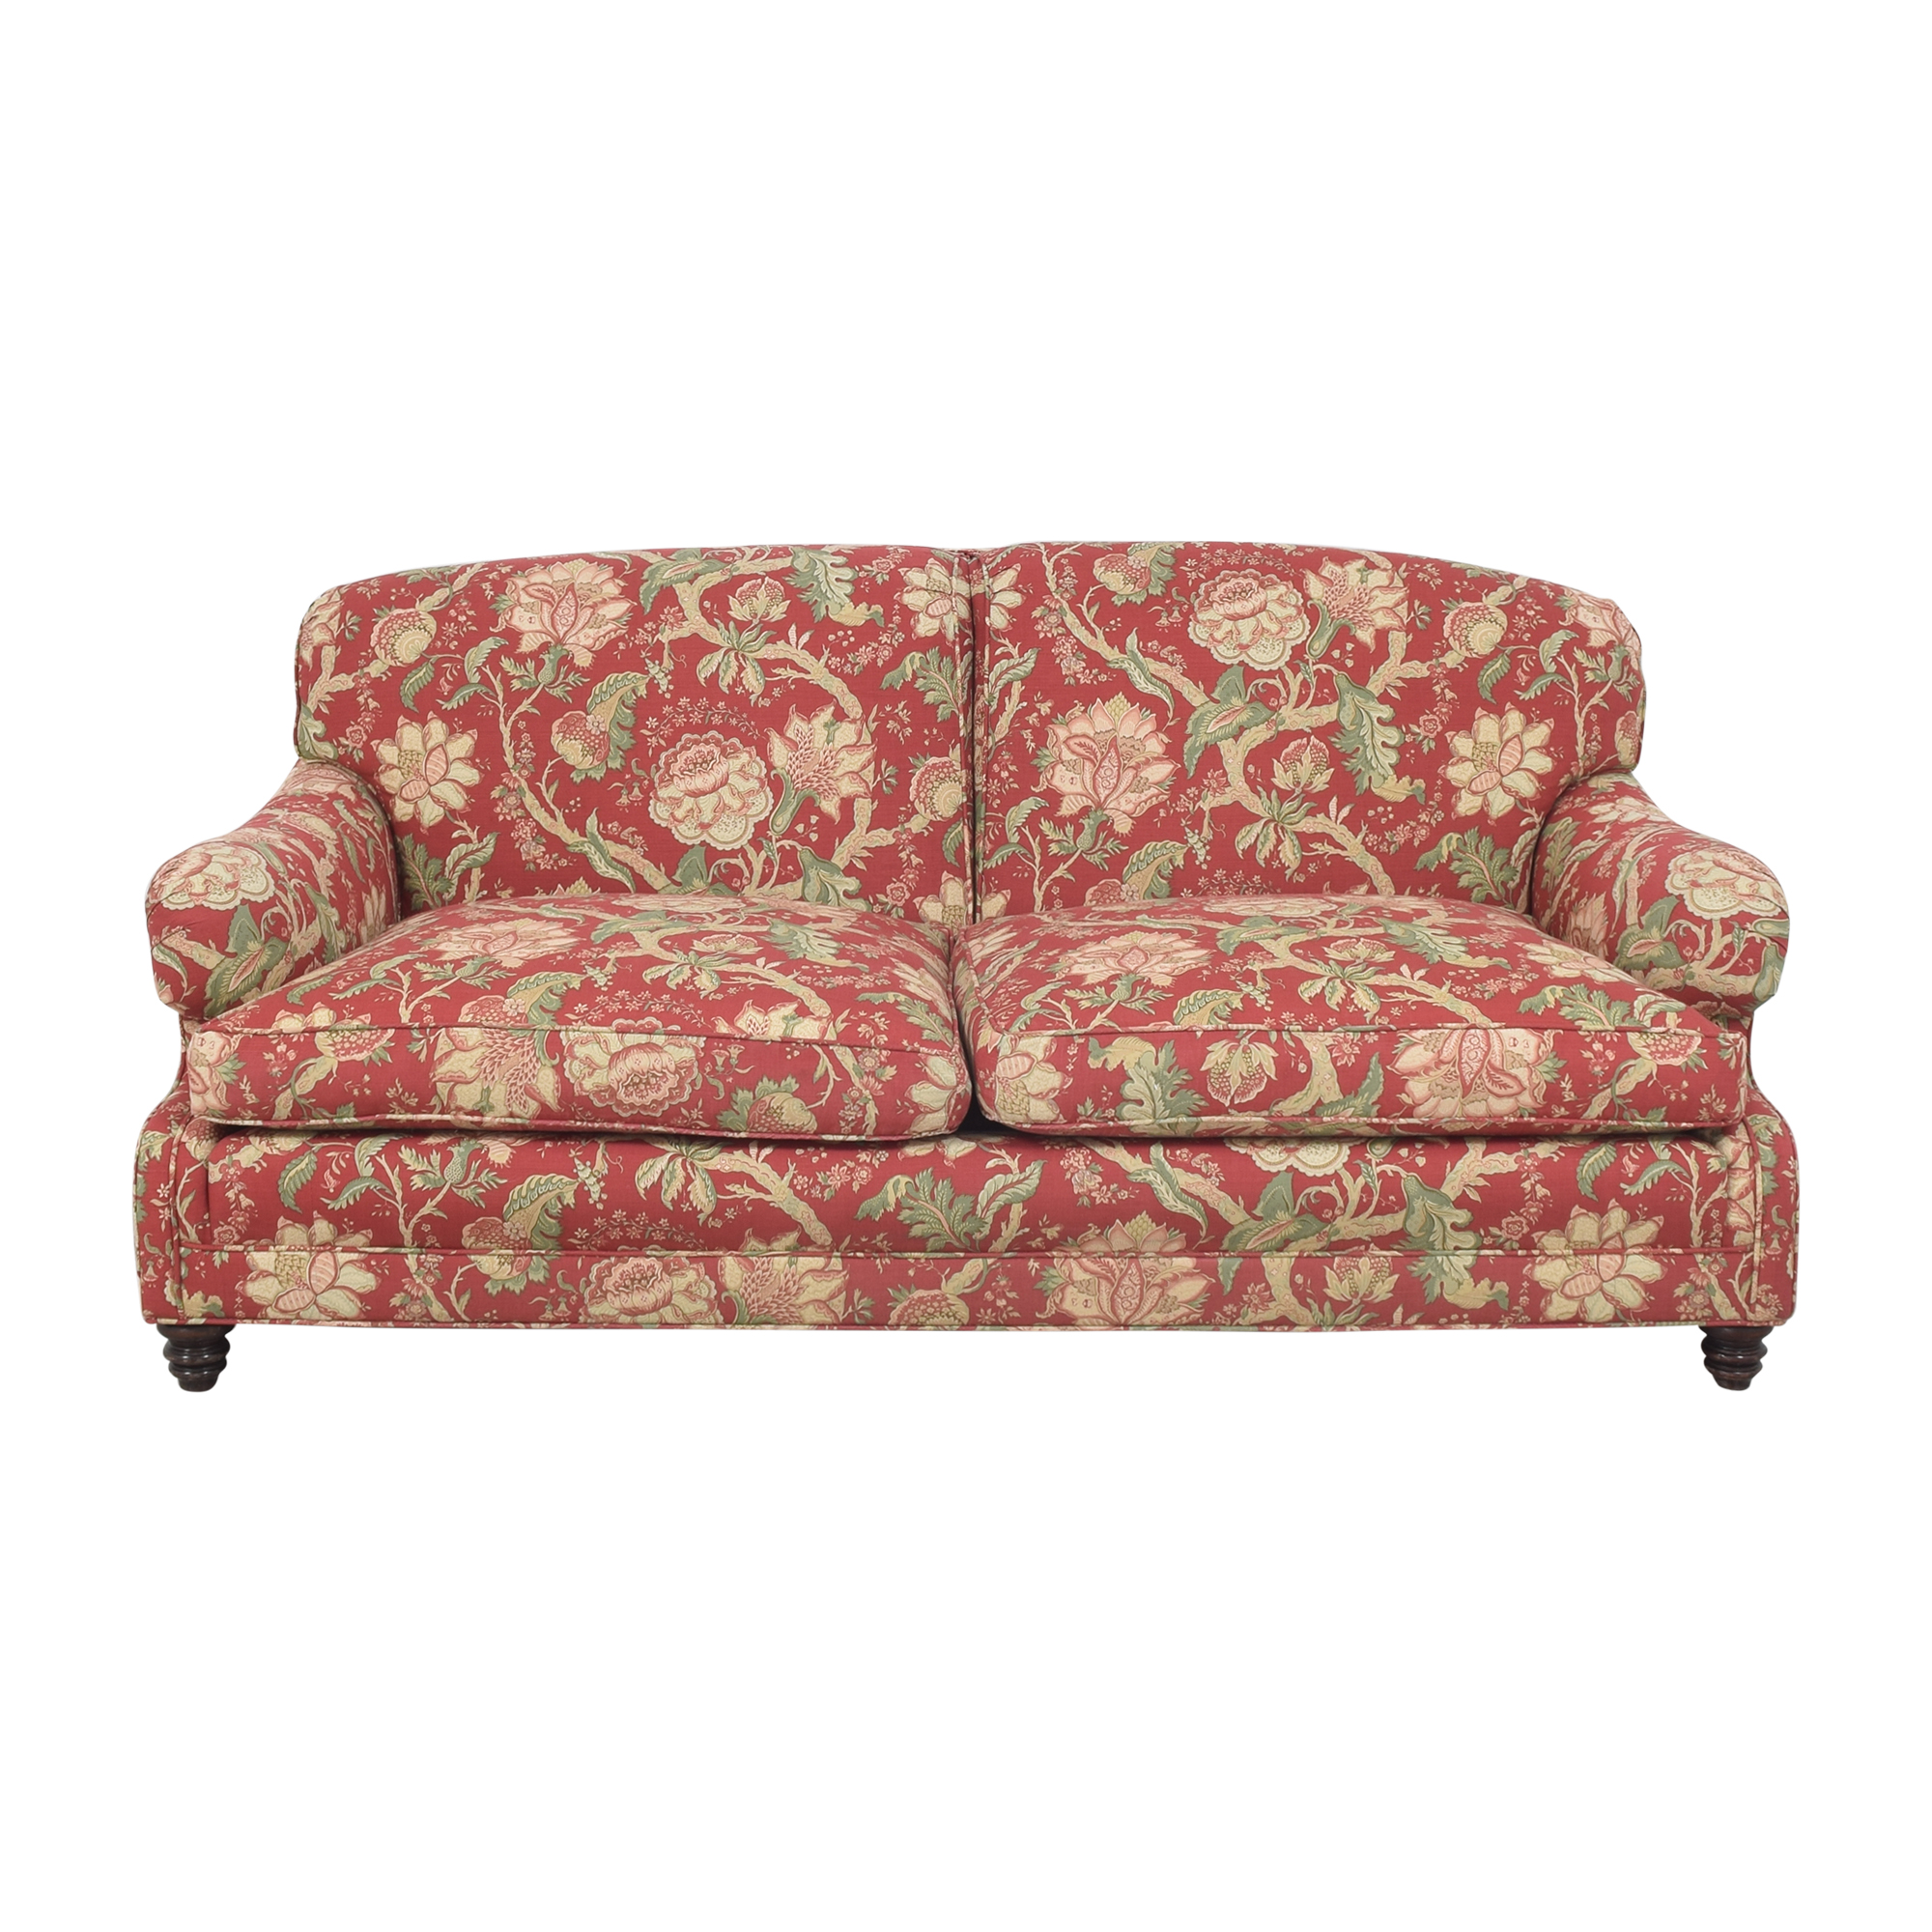 Barclay Butera Home Barclay Butera Home Floral Upholstered Sofa dimensions